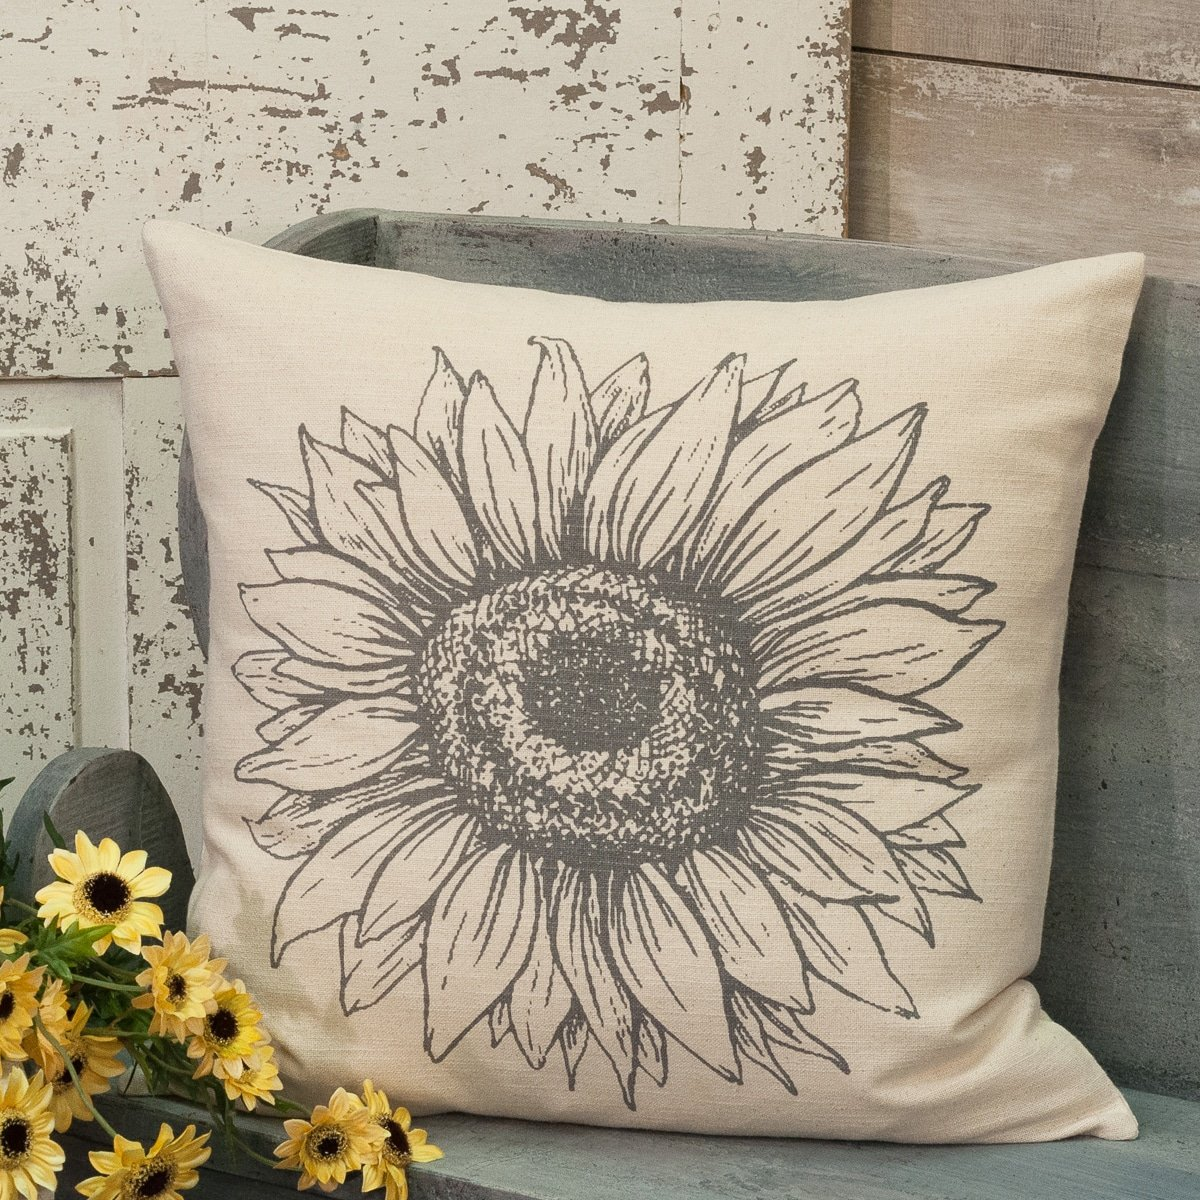 Sketched Sunflower 20 X 20 Pillow Cover Piper Classics